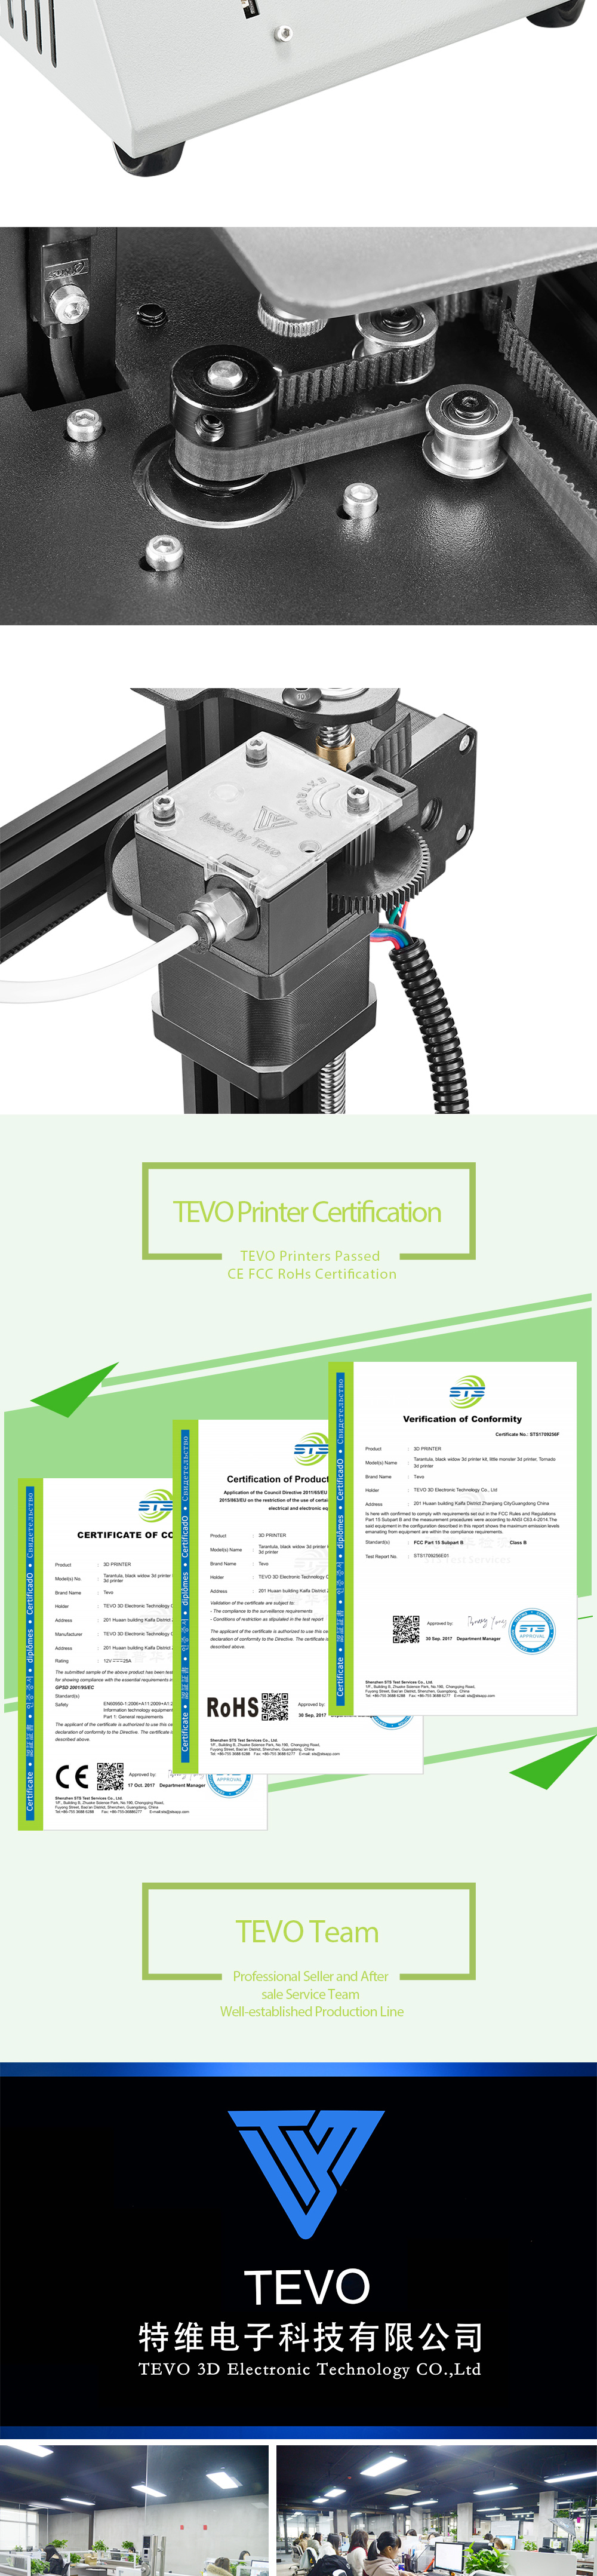 Tevo Michelangelo Fully Assembled 3d Printer Onlinestore Pin Marlin Model 60 Parts Diagram Image Search Results On Pinterest 01 02 03 04 05